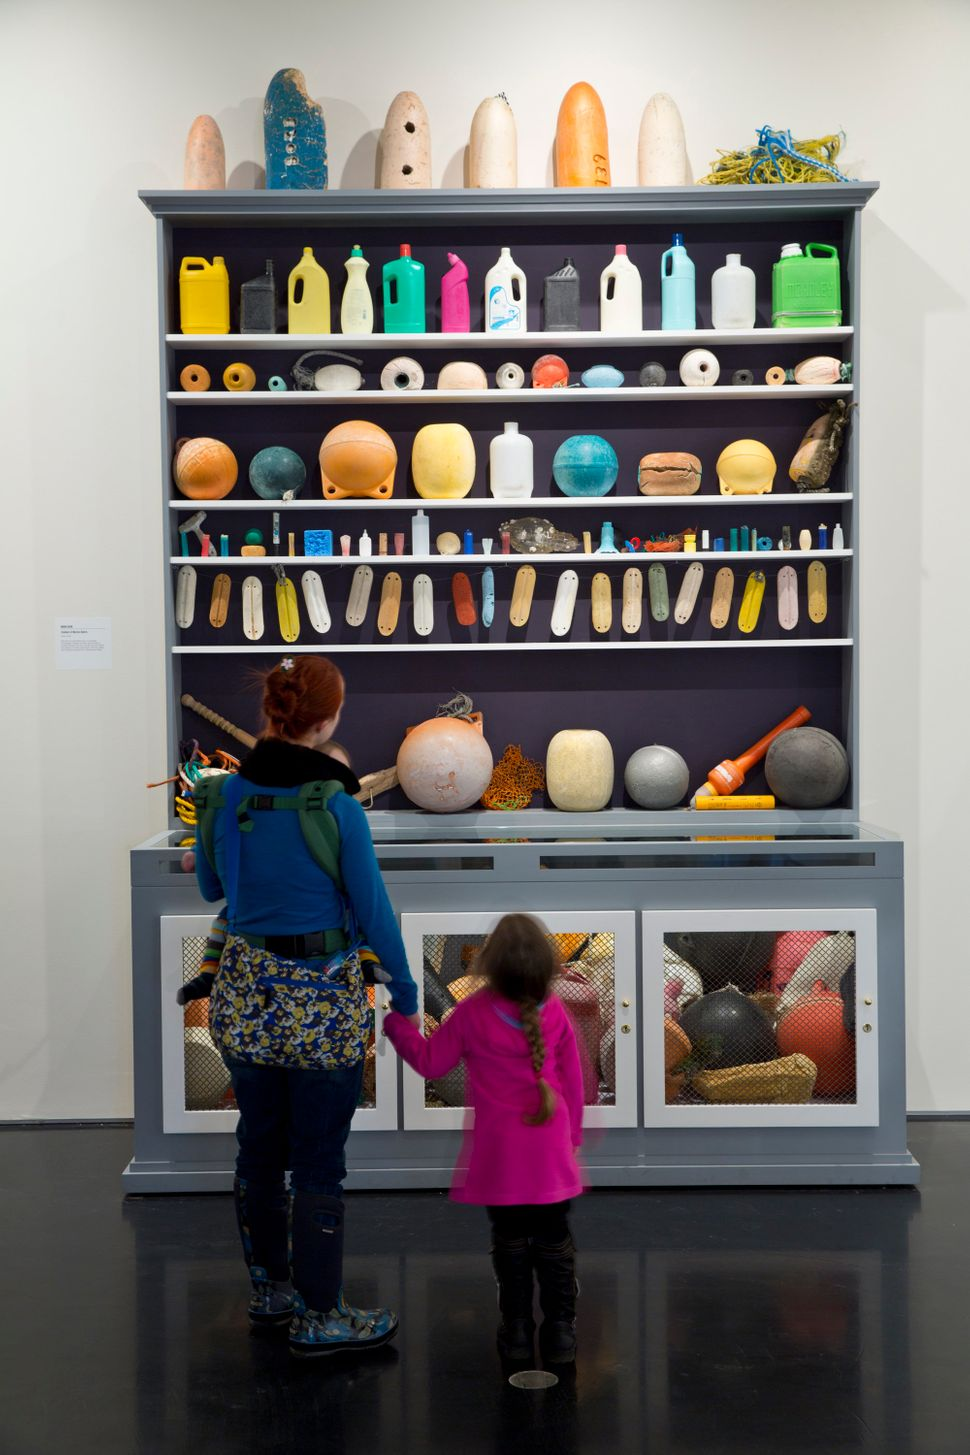 """Mark Dion, """"Cabinet of Marine Debris,"""" mixed media. As seen in """"Gyre: The Plastic Ocean"""" at the Anchorage Museum."""